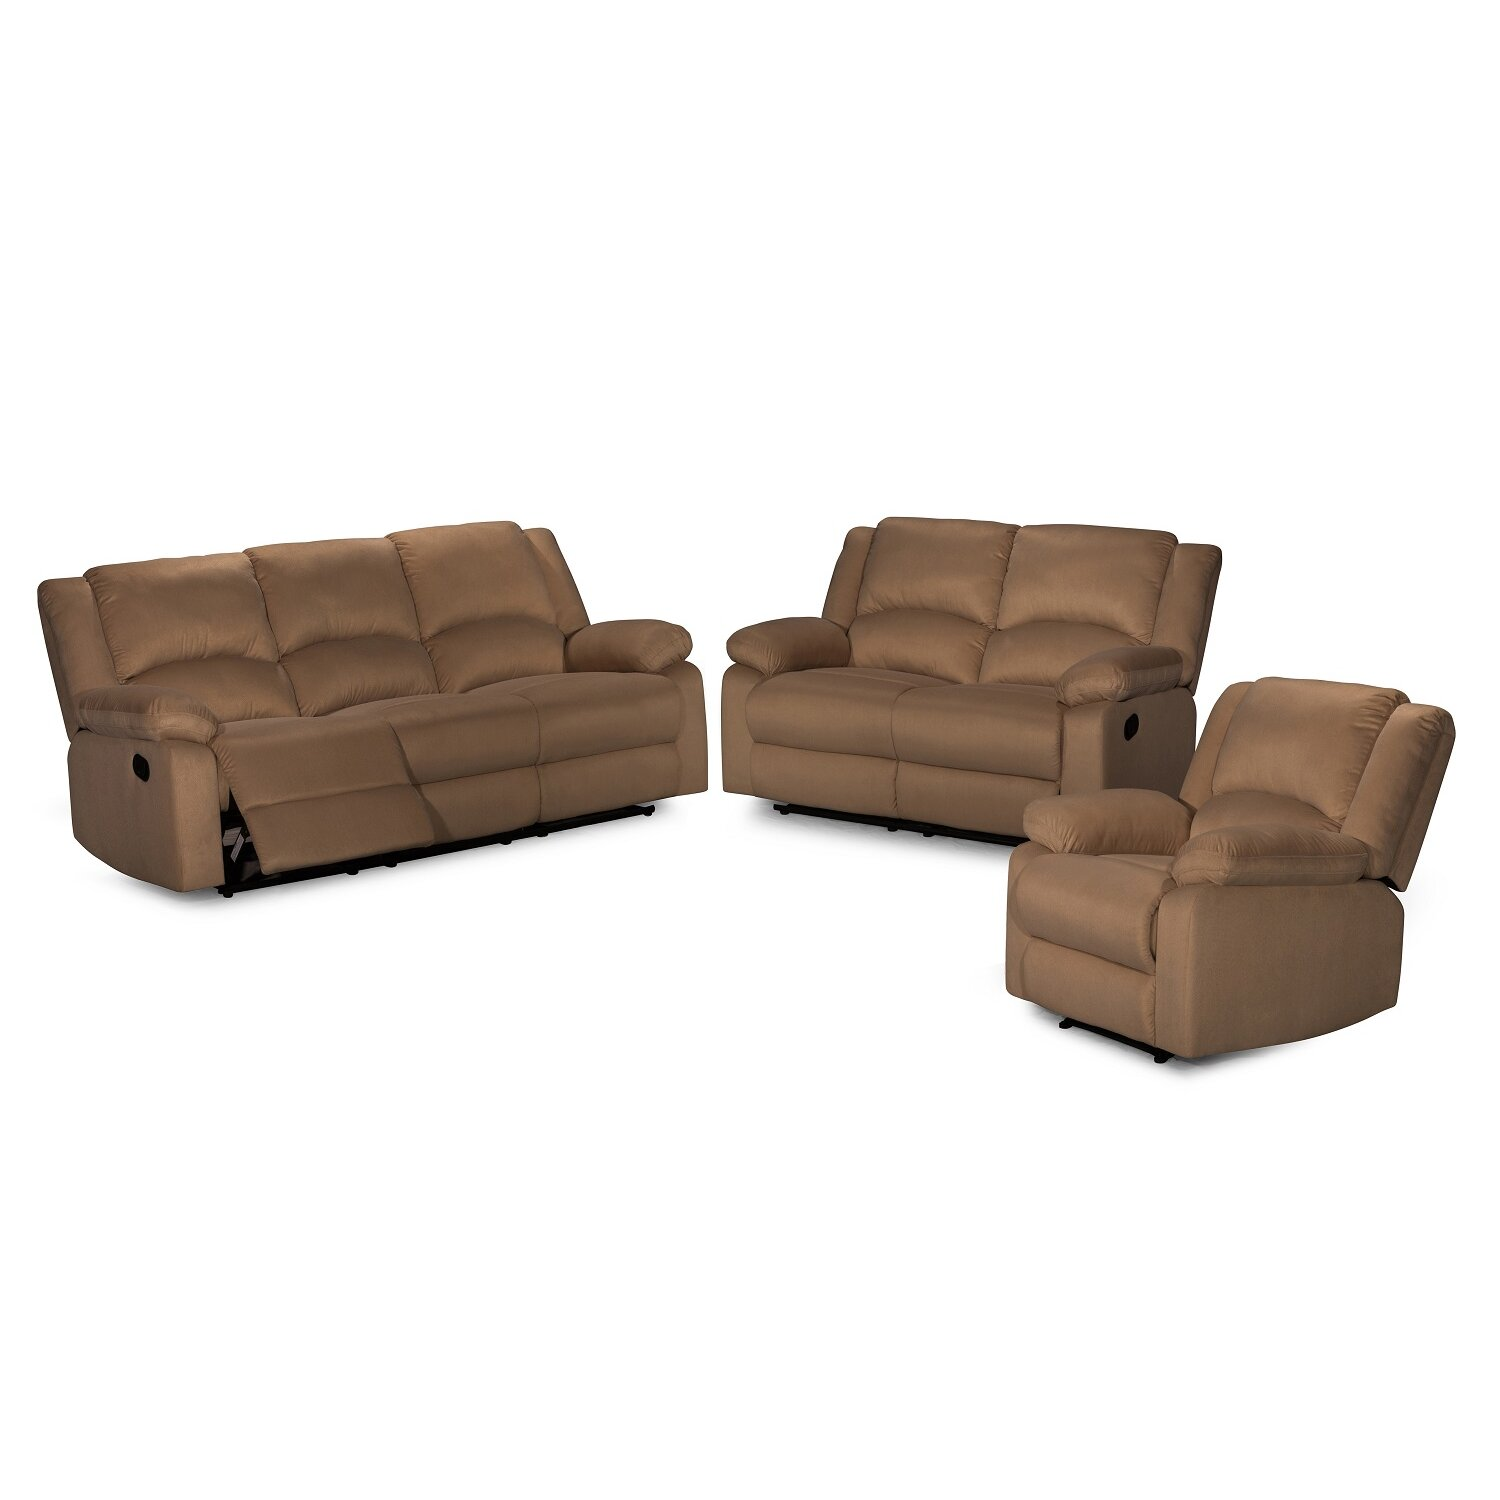 3 piece recliner sofa set wayfair. Black Bedroom Furniture Sets. Home Design Ideas